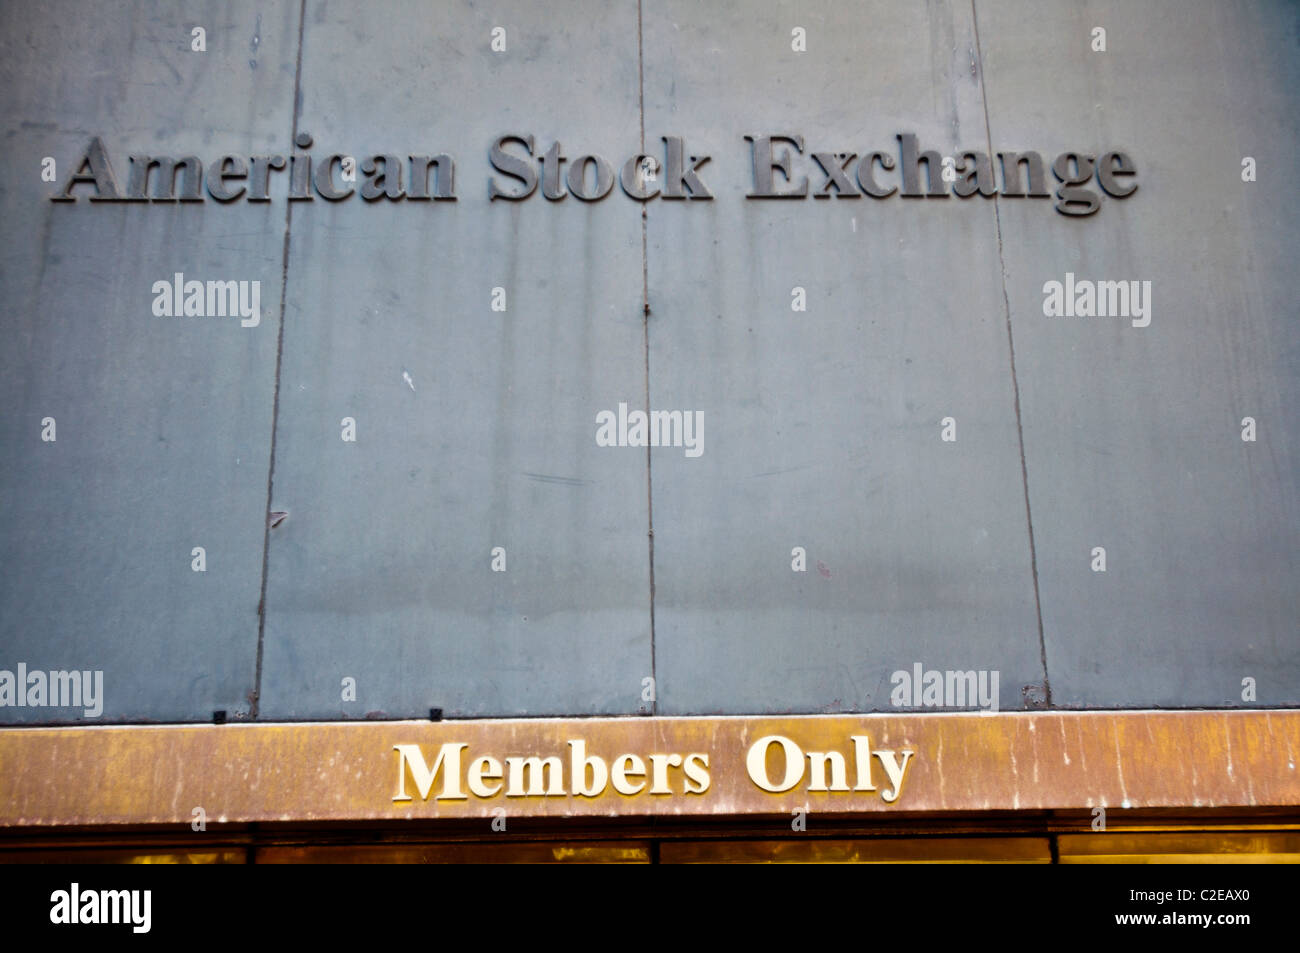 American Stock Exchange sign, Members Only, Financial District, New York City, USA - Stock Image